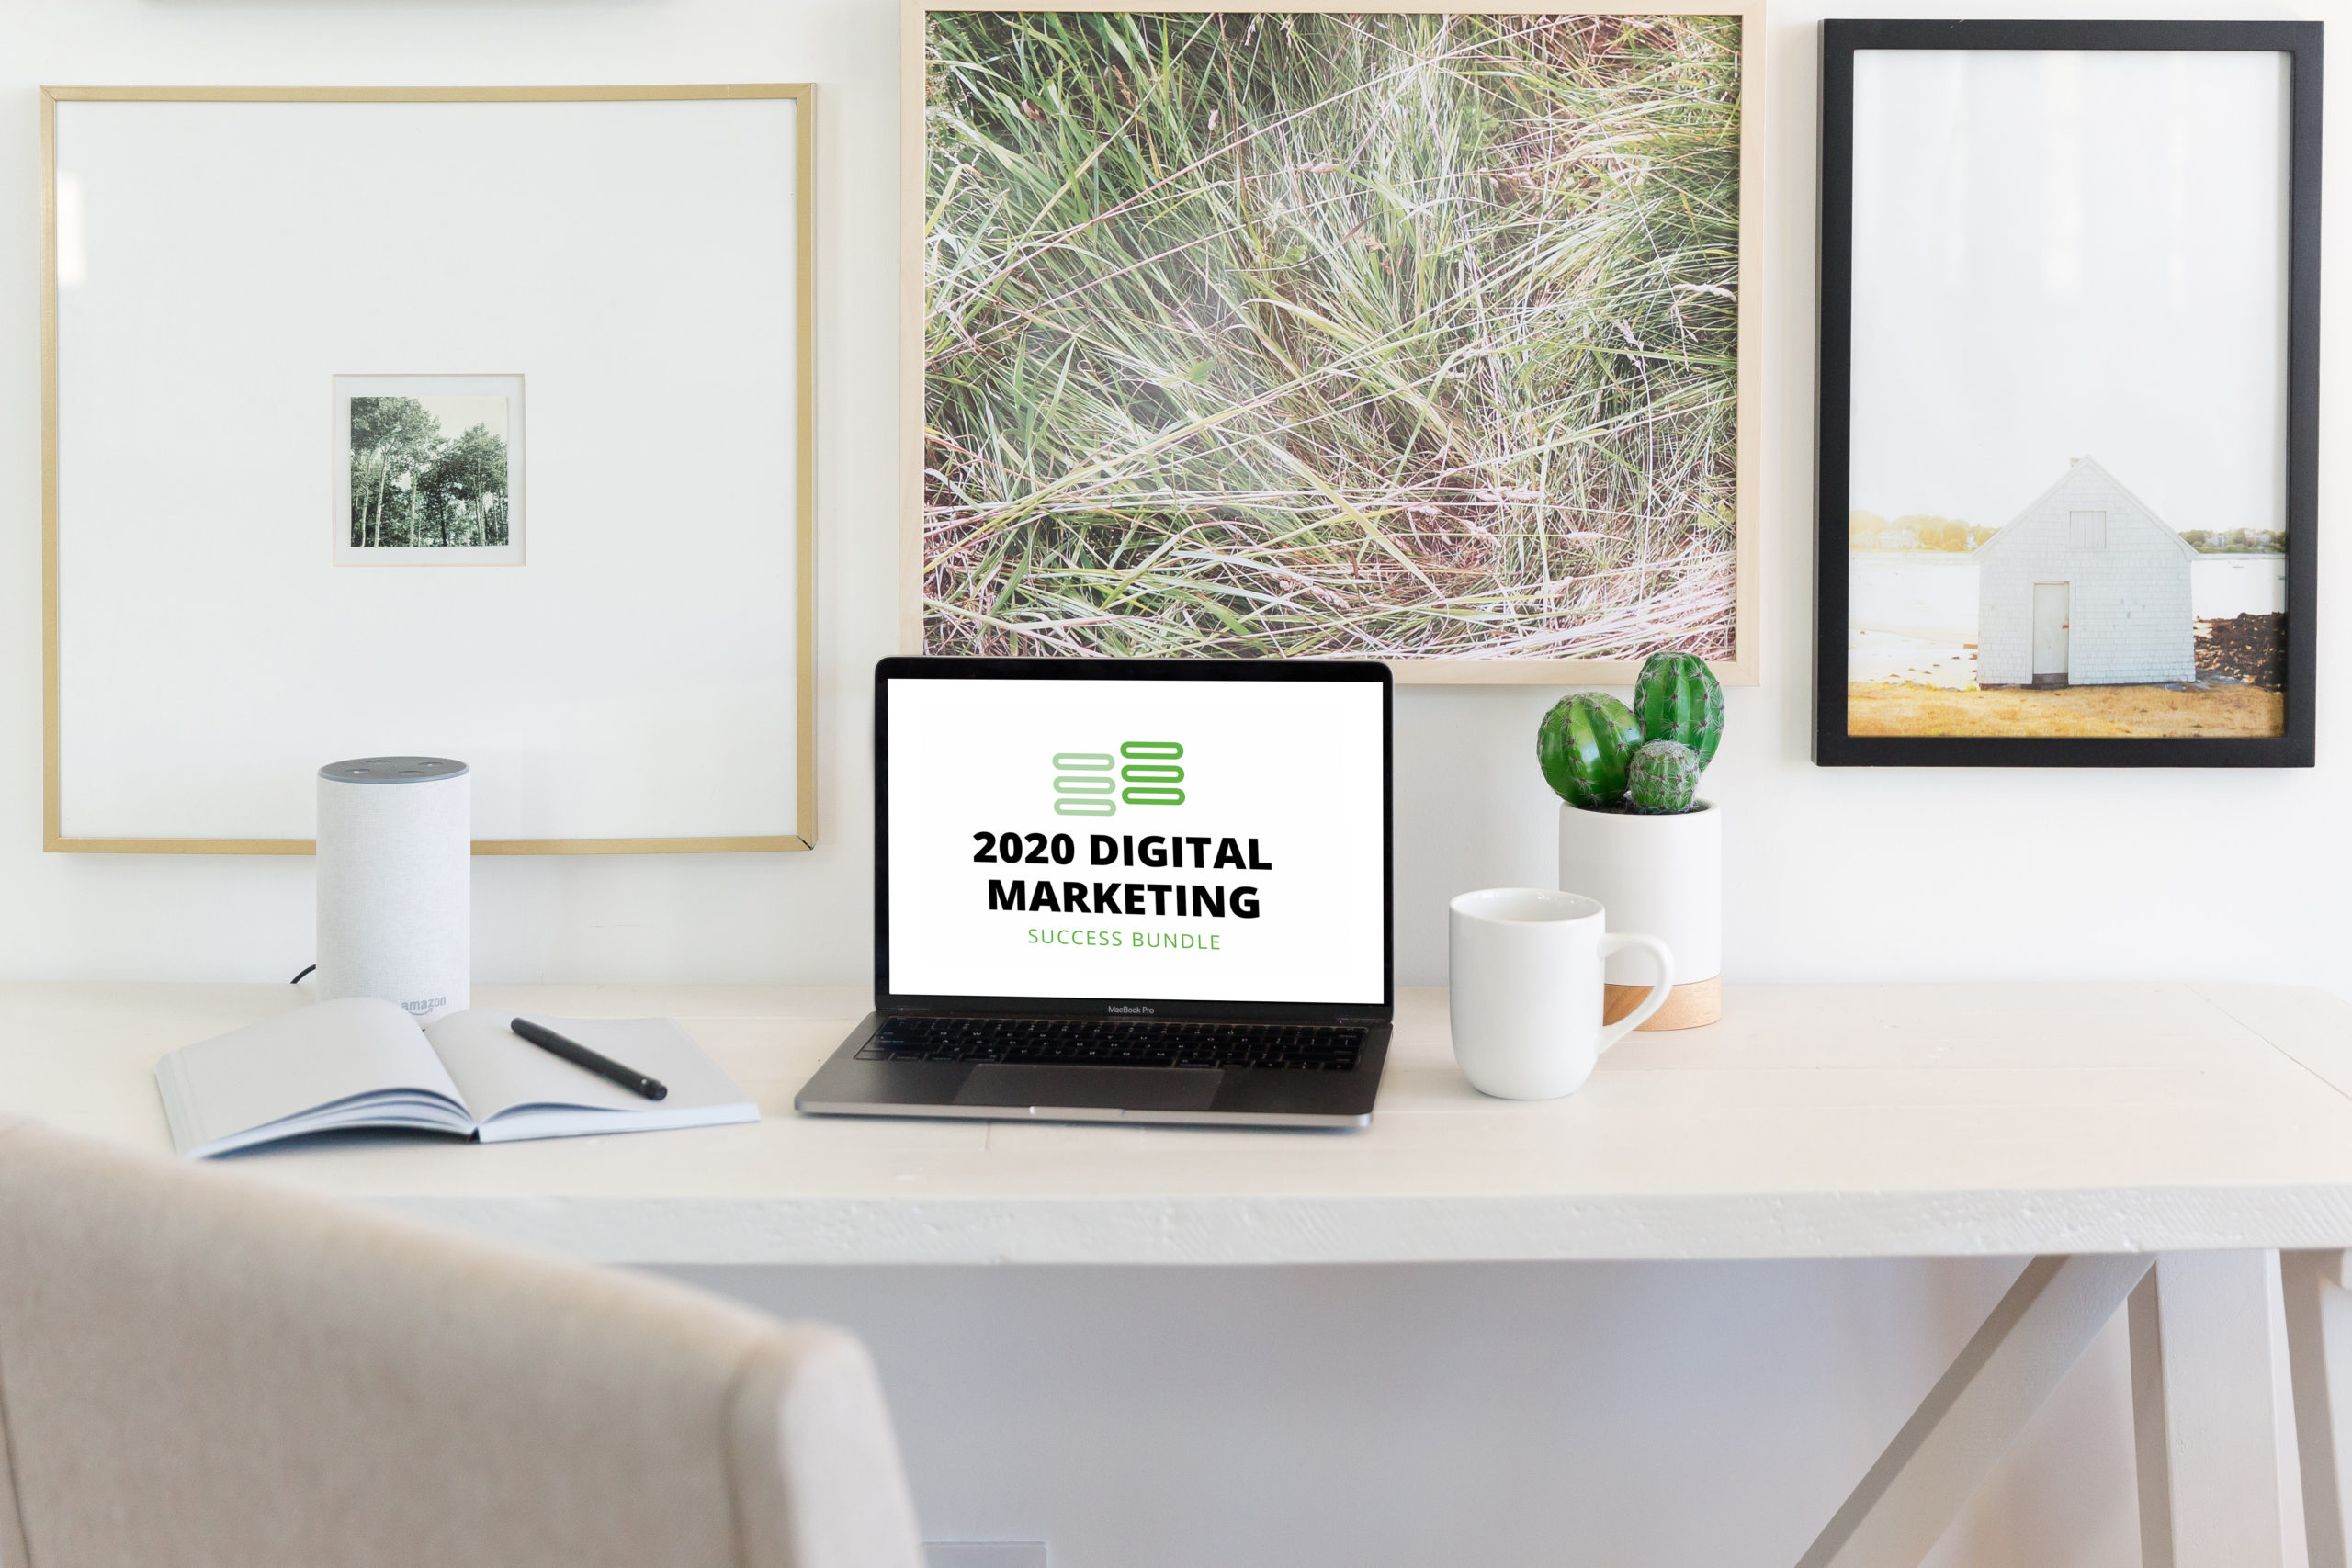 2020 Digital Marketing Success Bundle